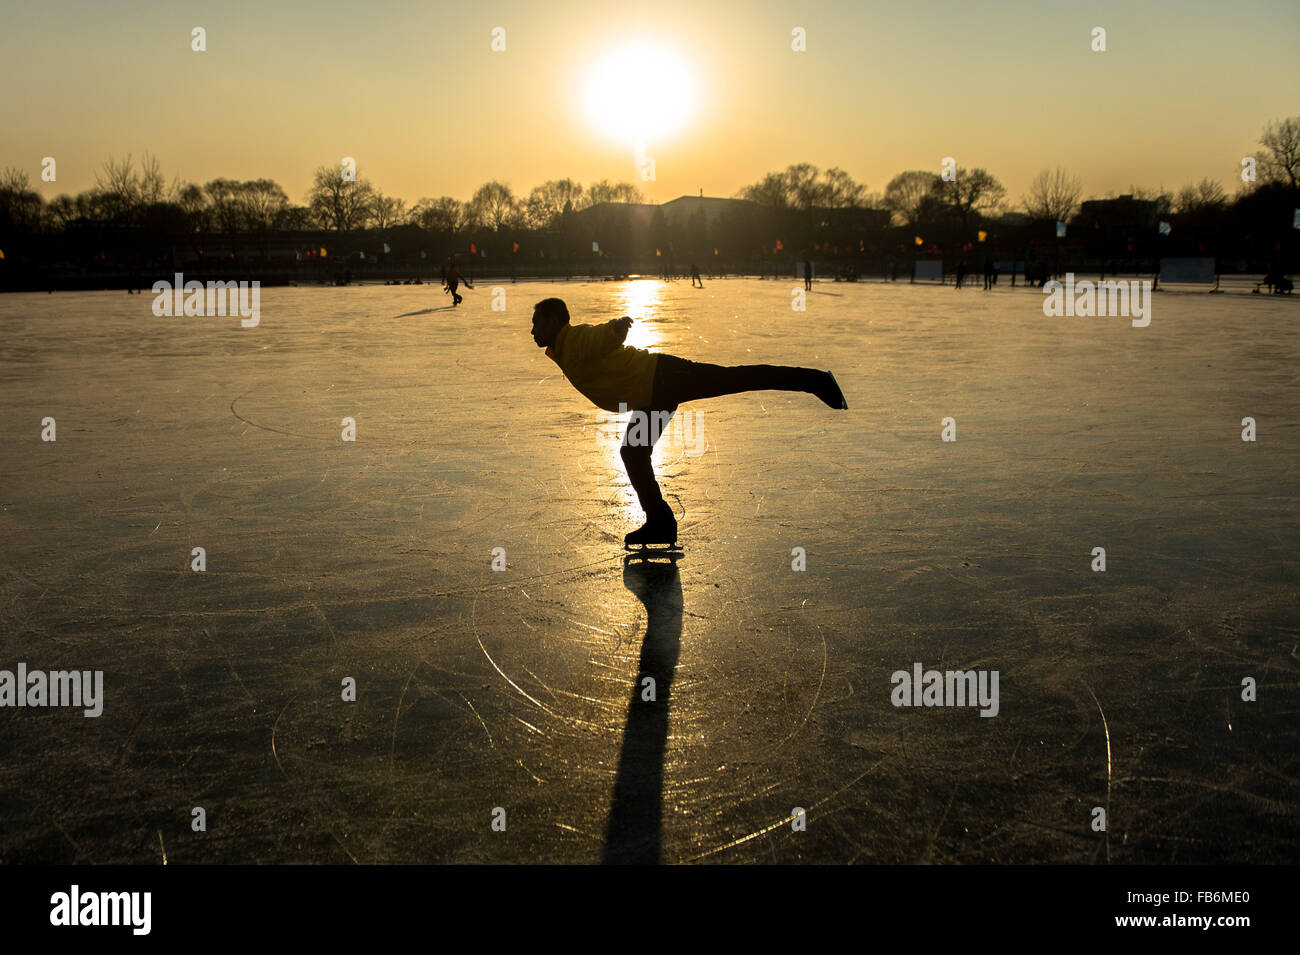 Beijing, China. 5th Jan, 2015. A skating lover performs on a skating rink at Shichahai, a scenic area in Beijing, - Stock Image